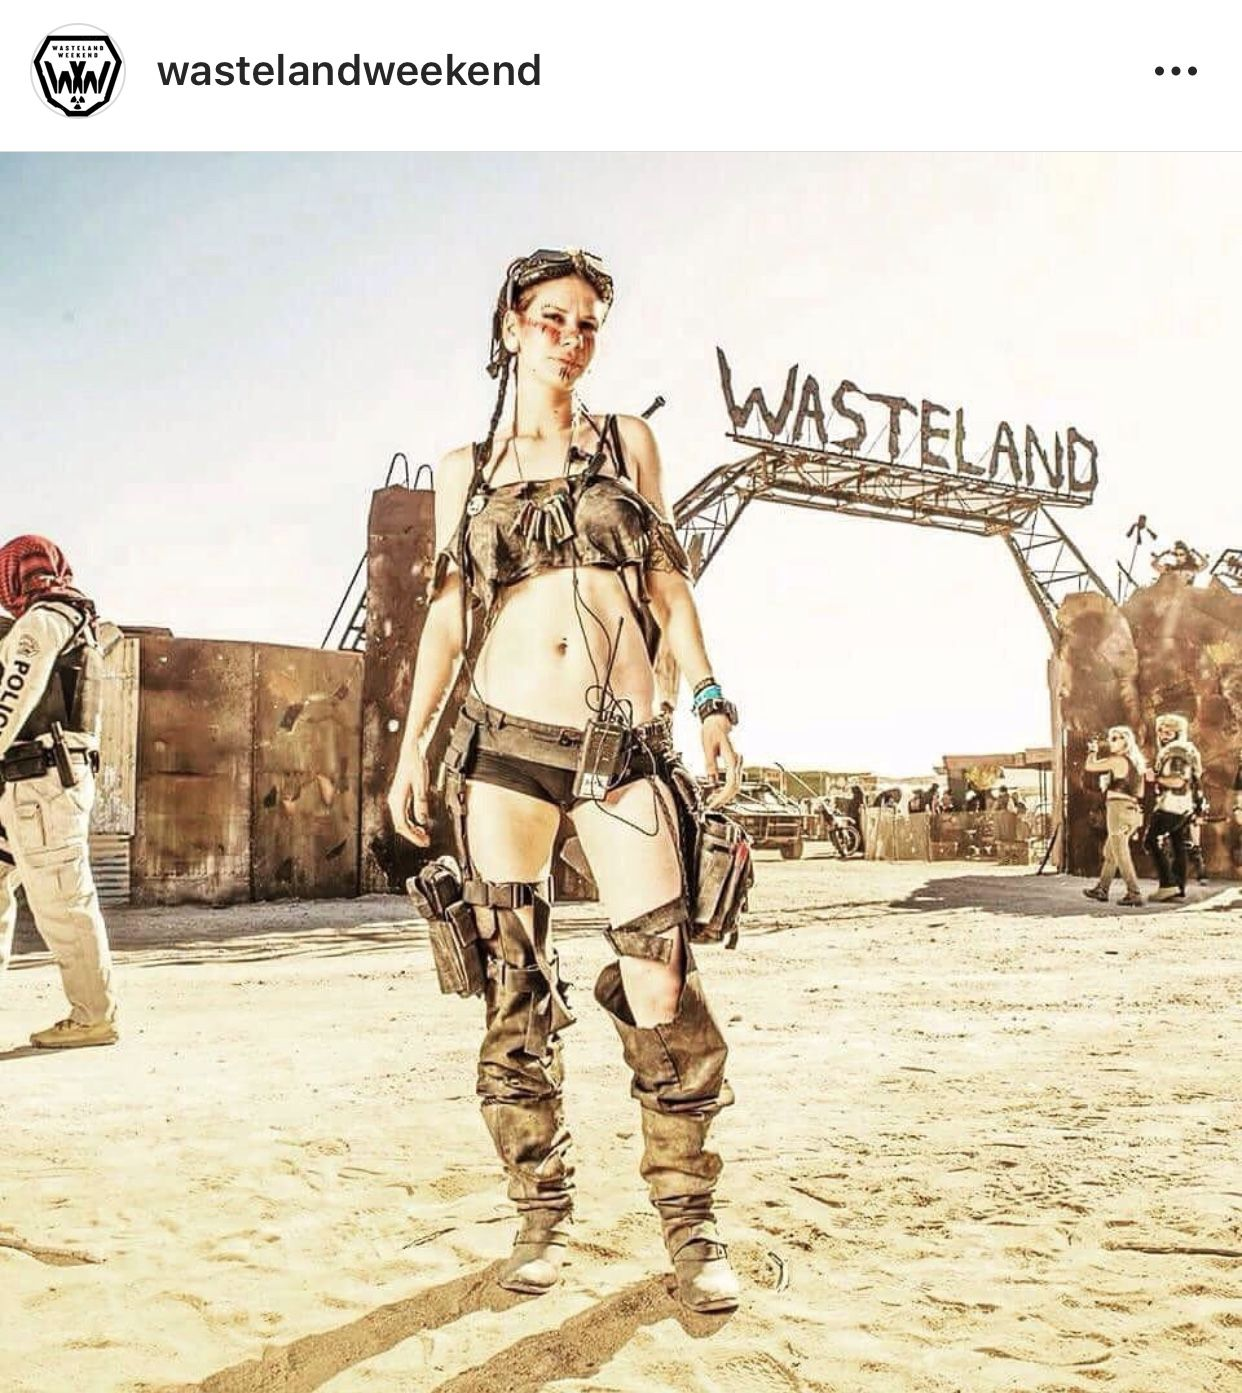 Post Apocalyptic Wasteland Weekend Dystopian Fashion Post Apocalyptic Girl Post Apocalyptic Fashion Wasteland Weekend